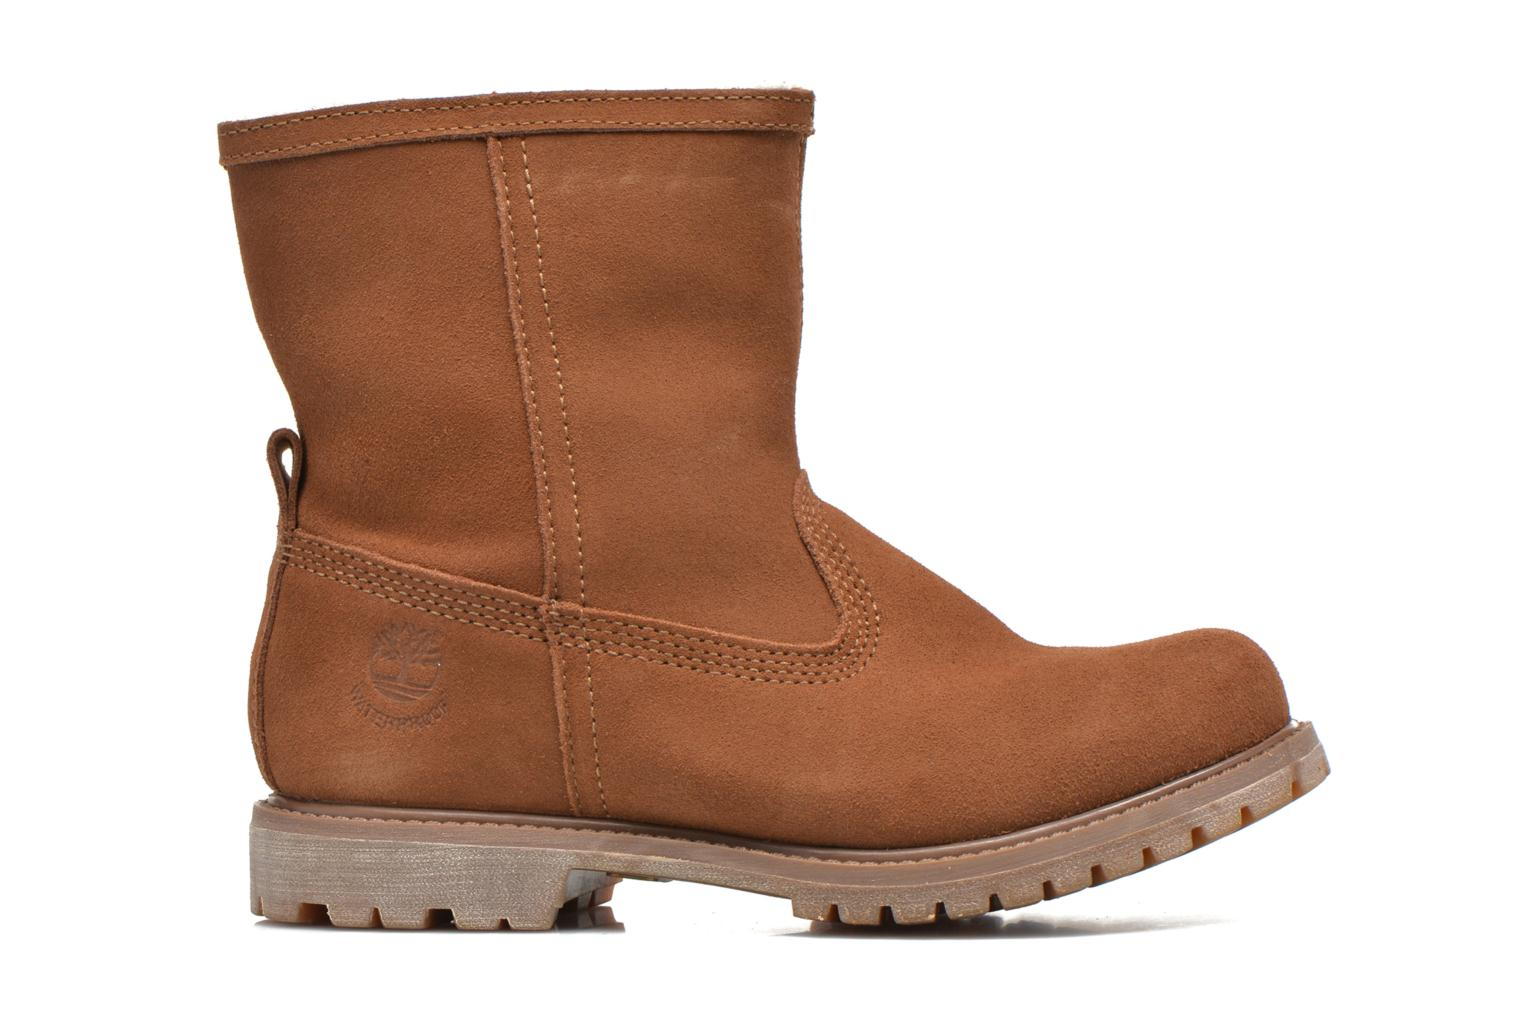 Bottines et boots Timberland Authentics Warm Line Marron vue derrière